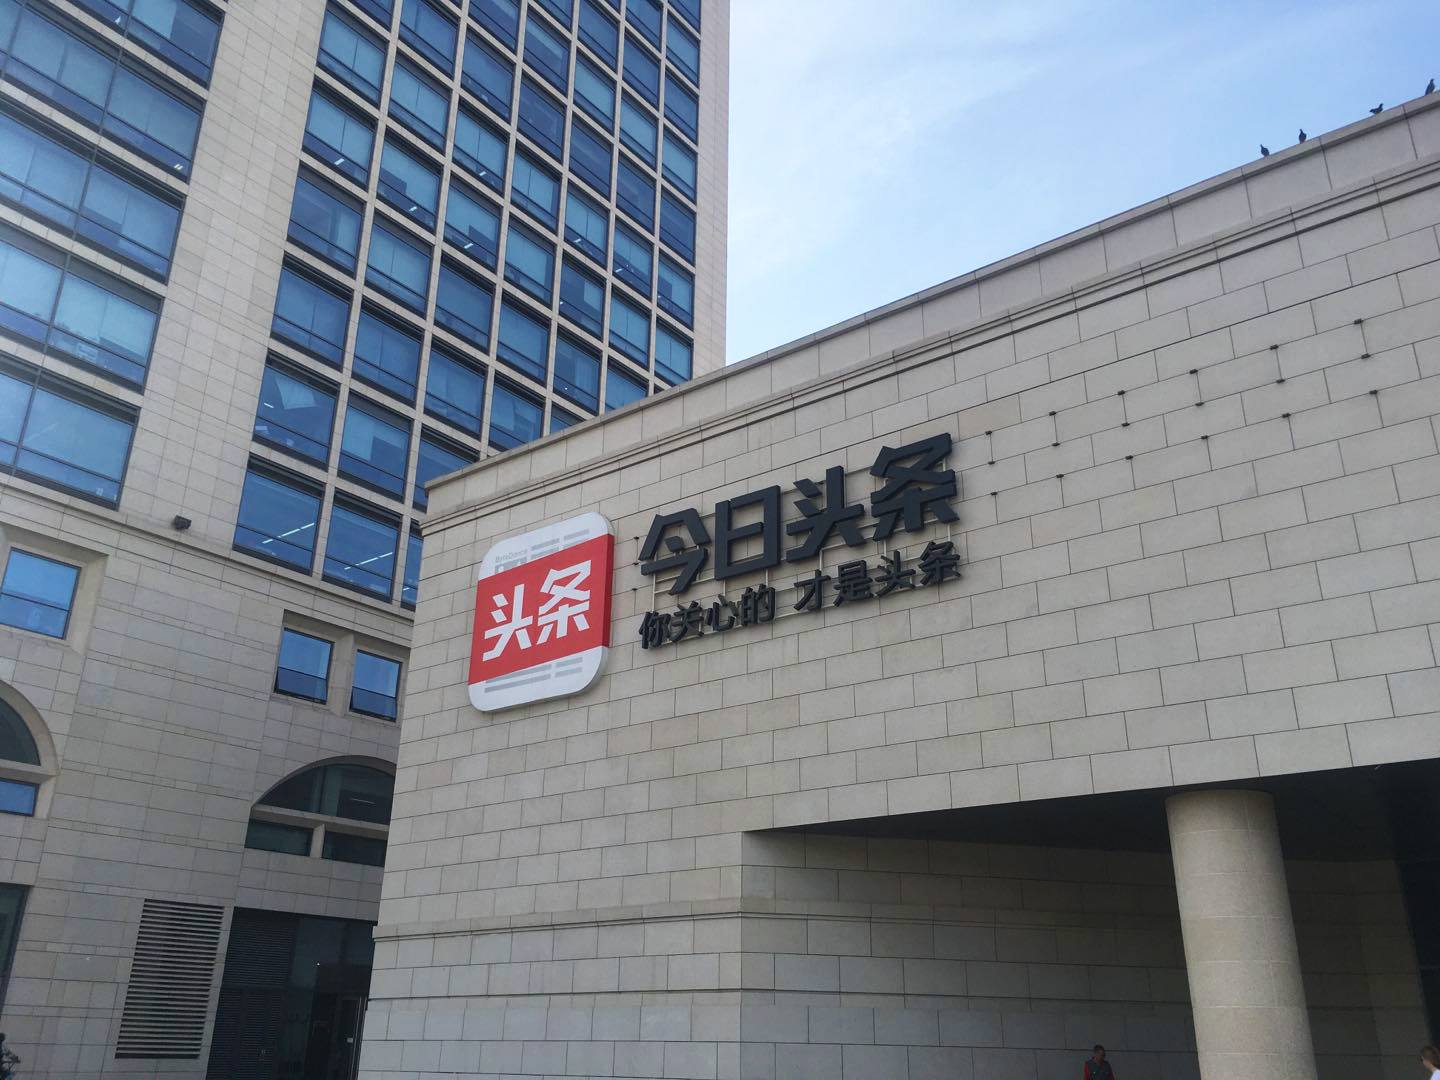 Toutiao headquarters in Beijing